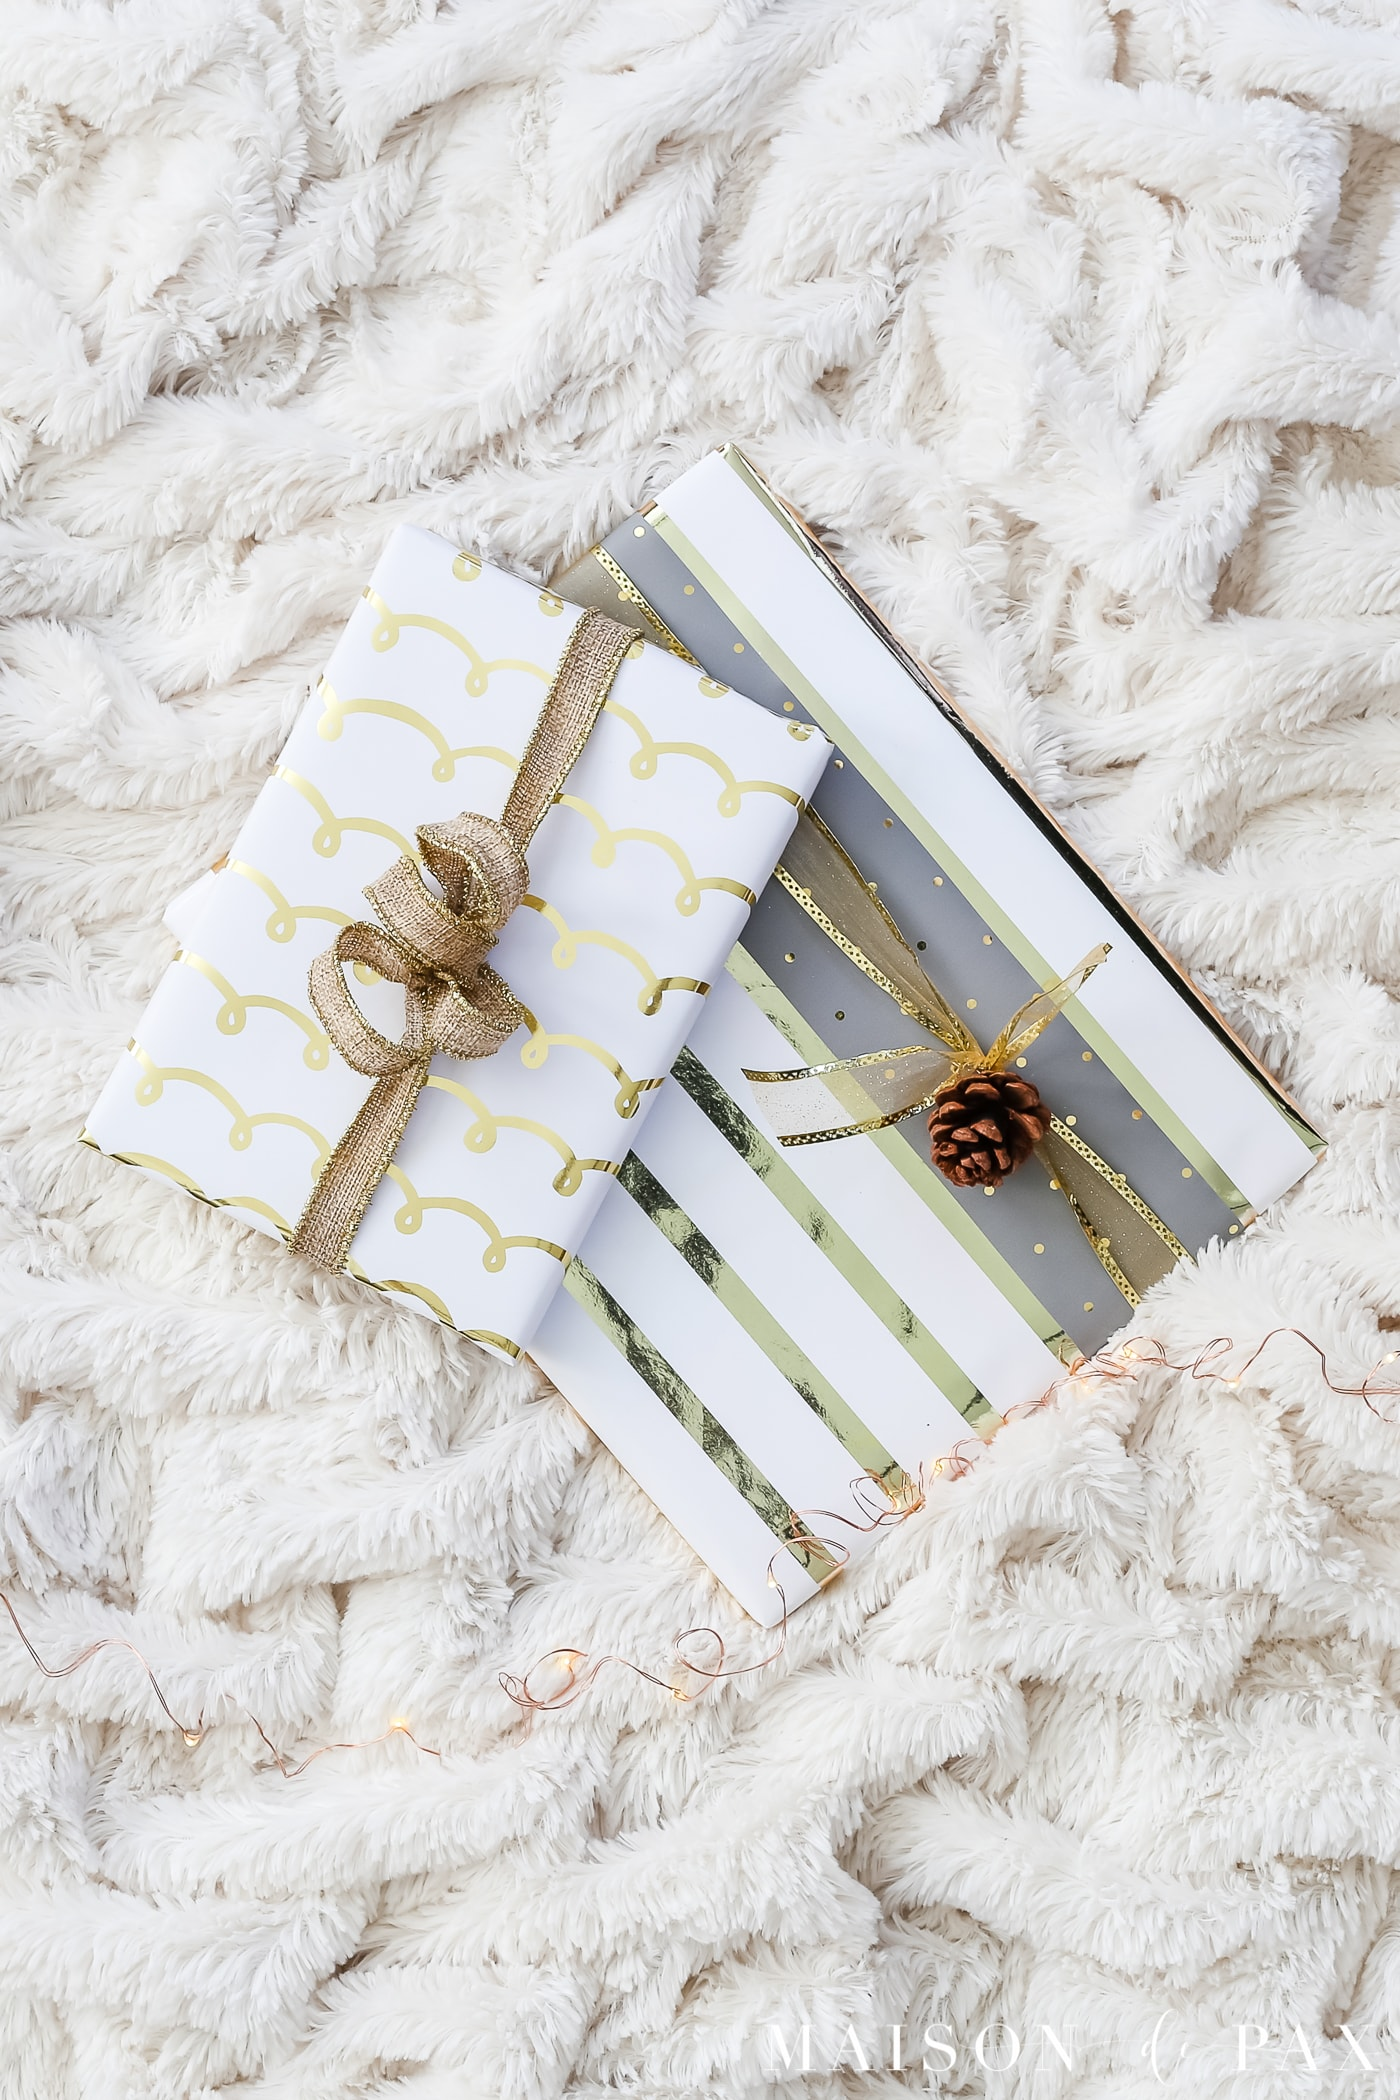 easy gift wrapping ideas: layer complementary papers #christmaspresents #giftwrap